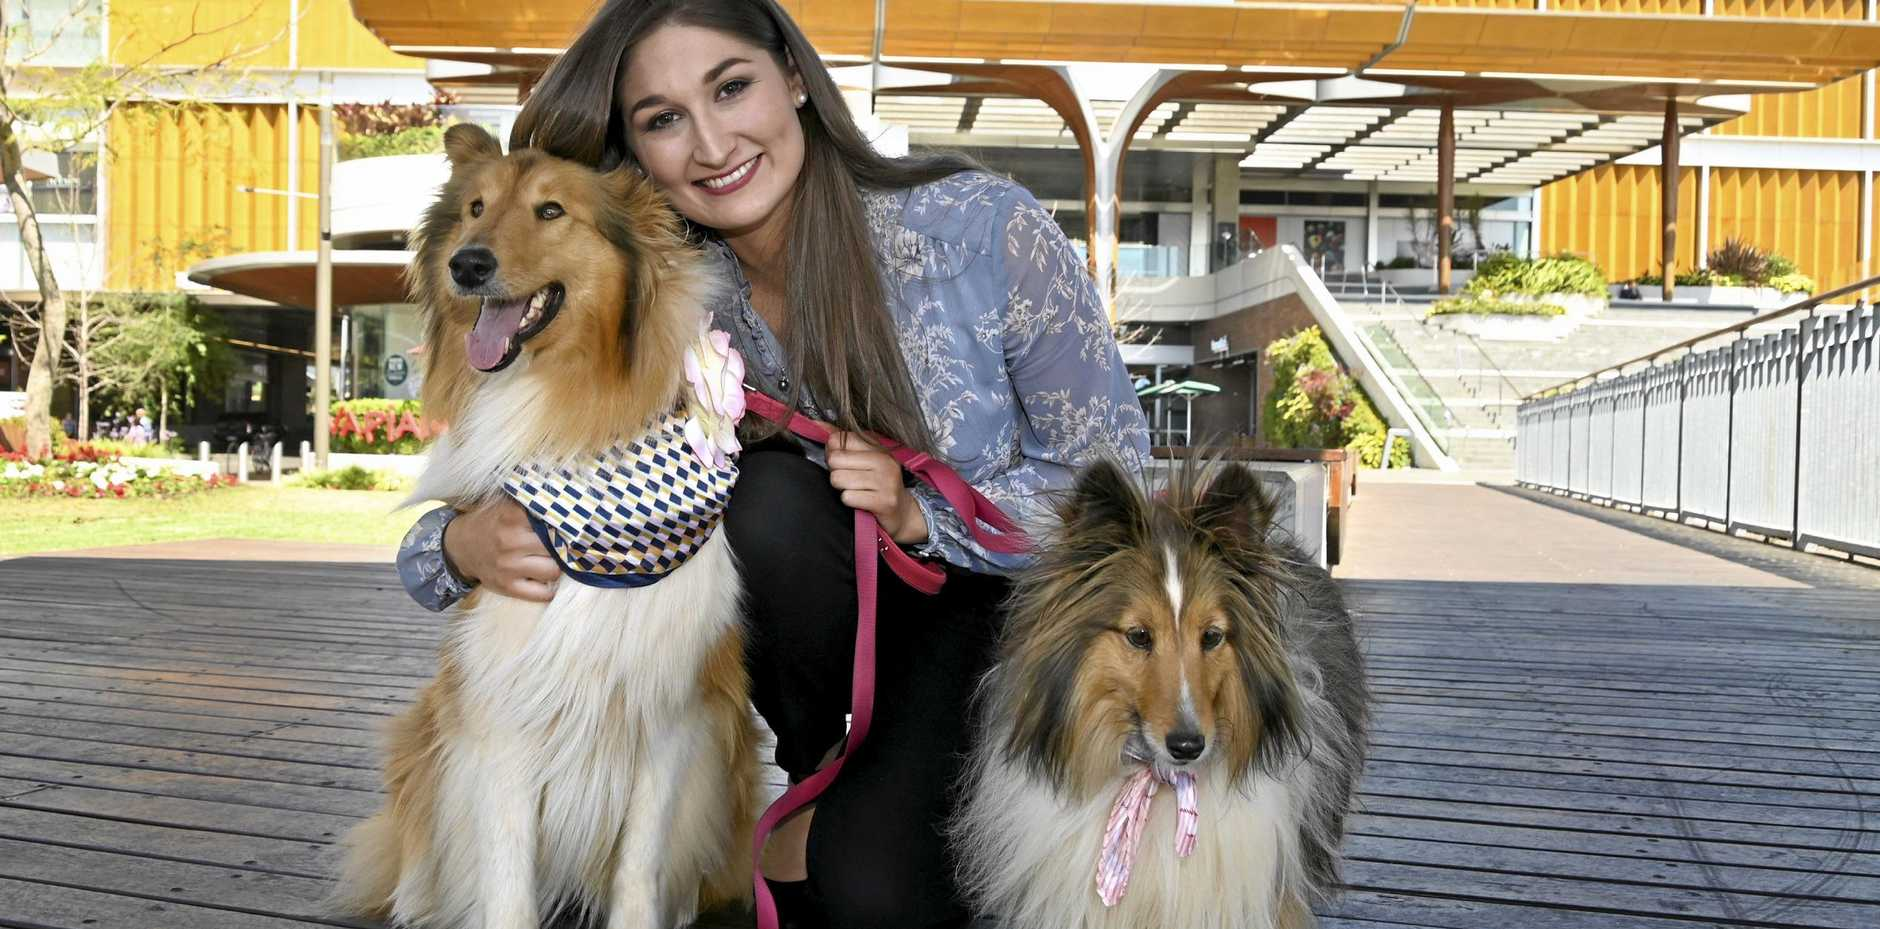 VANITY FUR: Chantelle Reyes and her dogs Penny (left) and Eevee have been selected for Toowoomba's first Grand Central dog fashion parade, which will take place on Saturday.